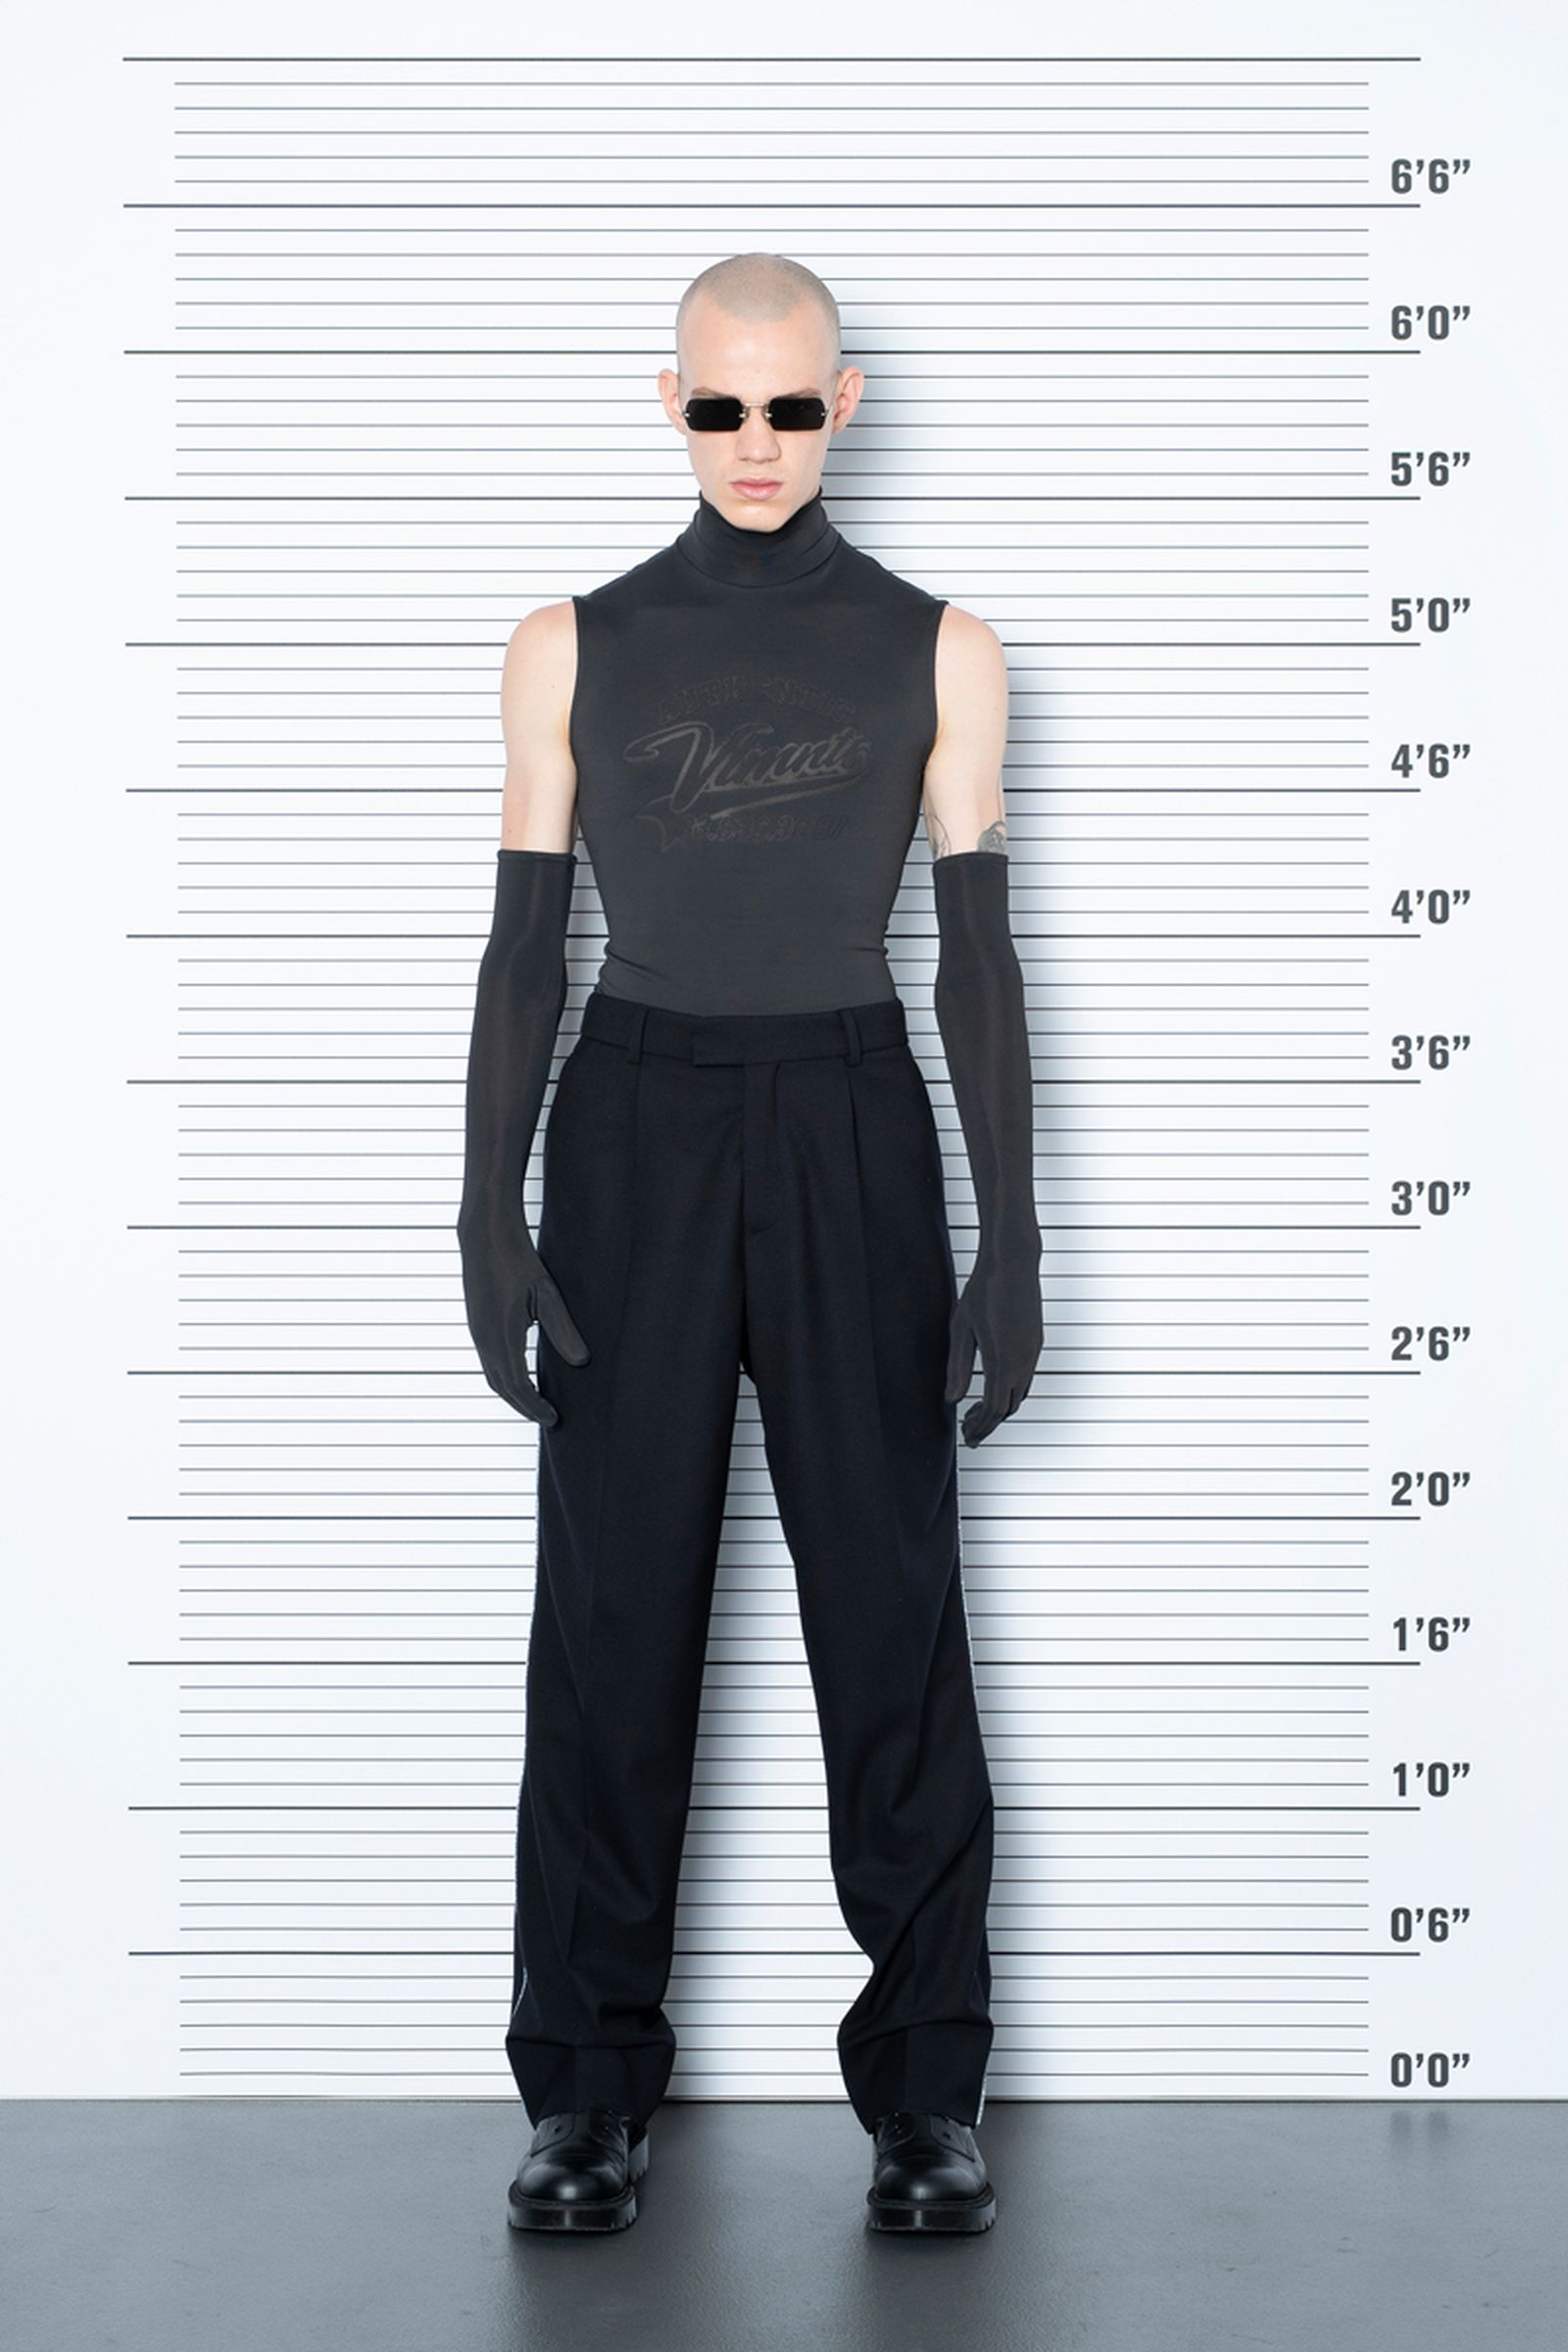 vetements-vtmnts-ss22-collection-lookbook- (23)